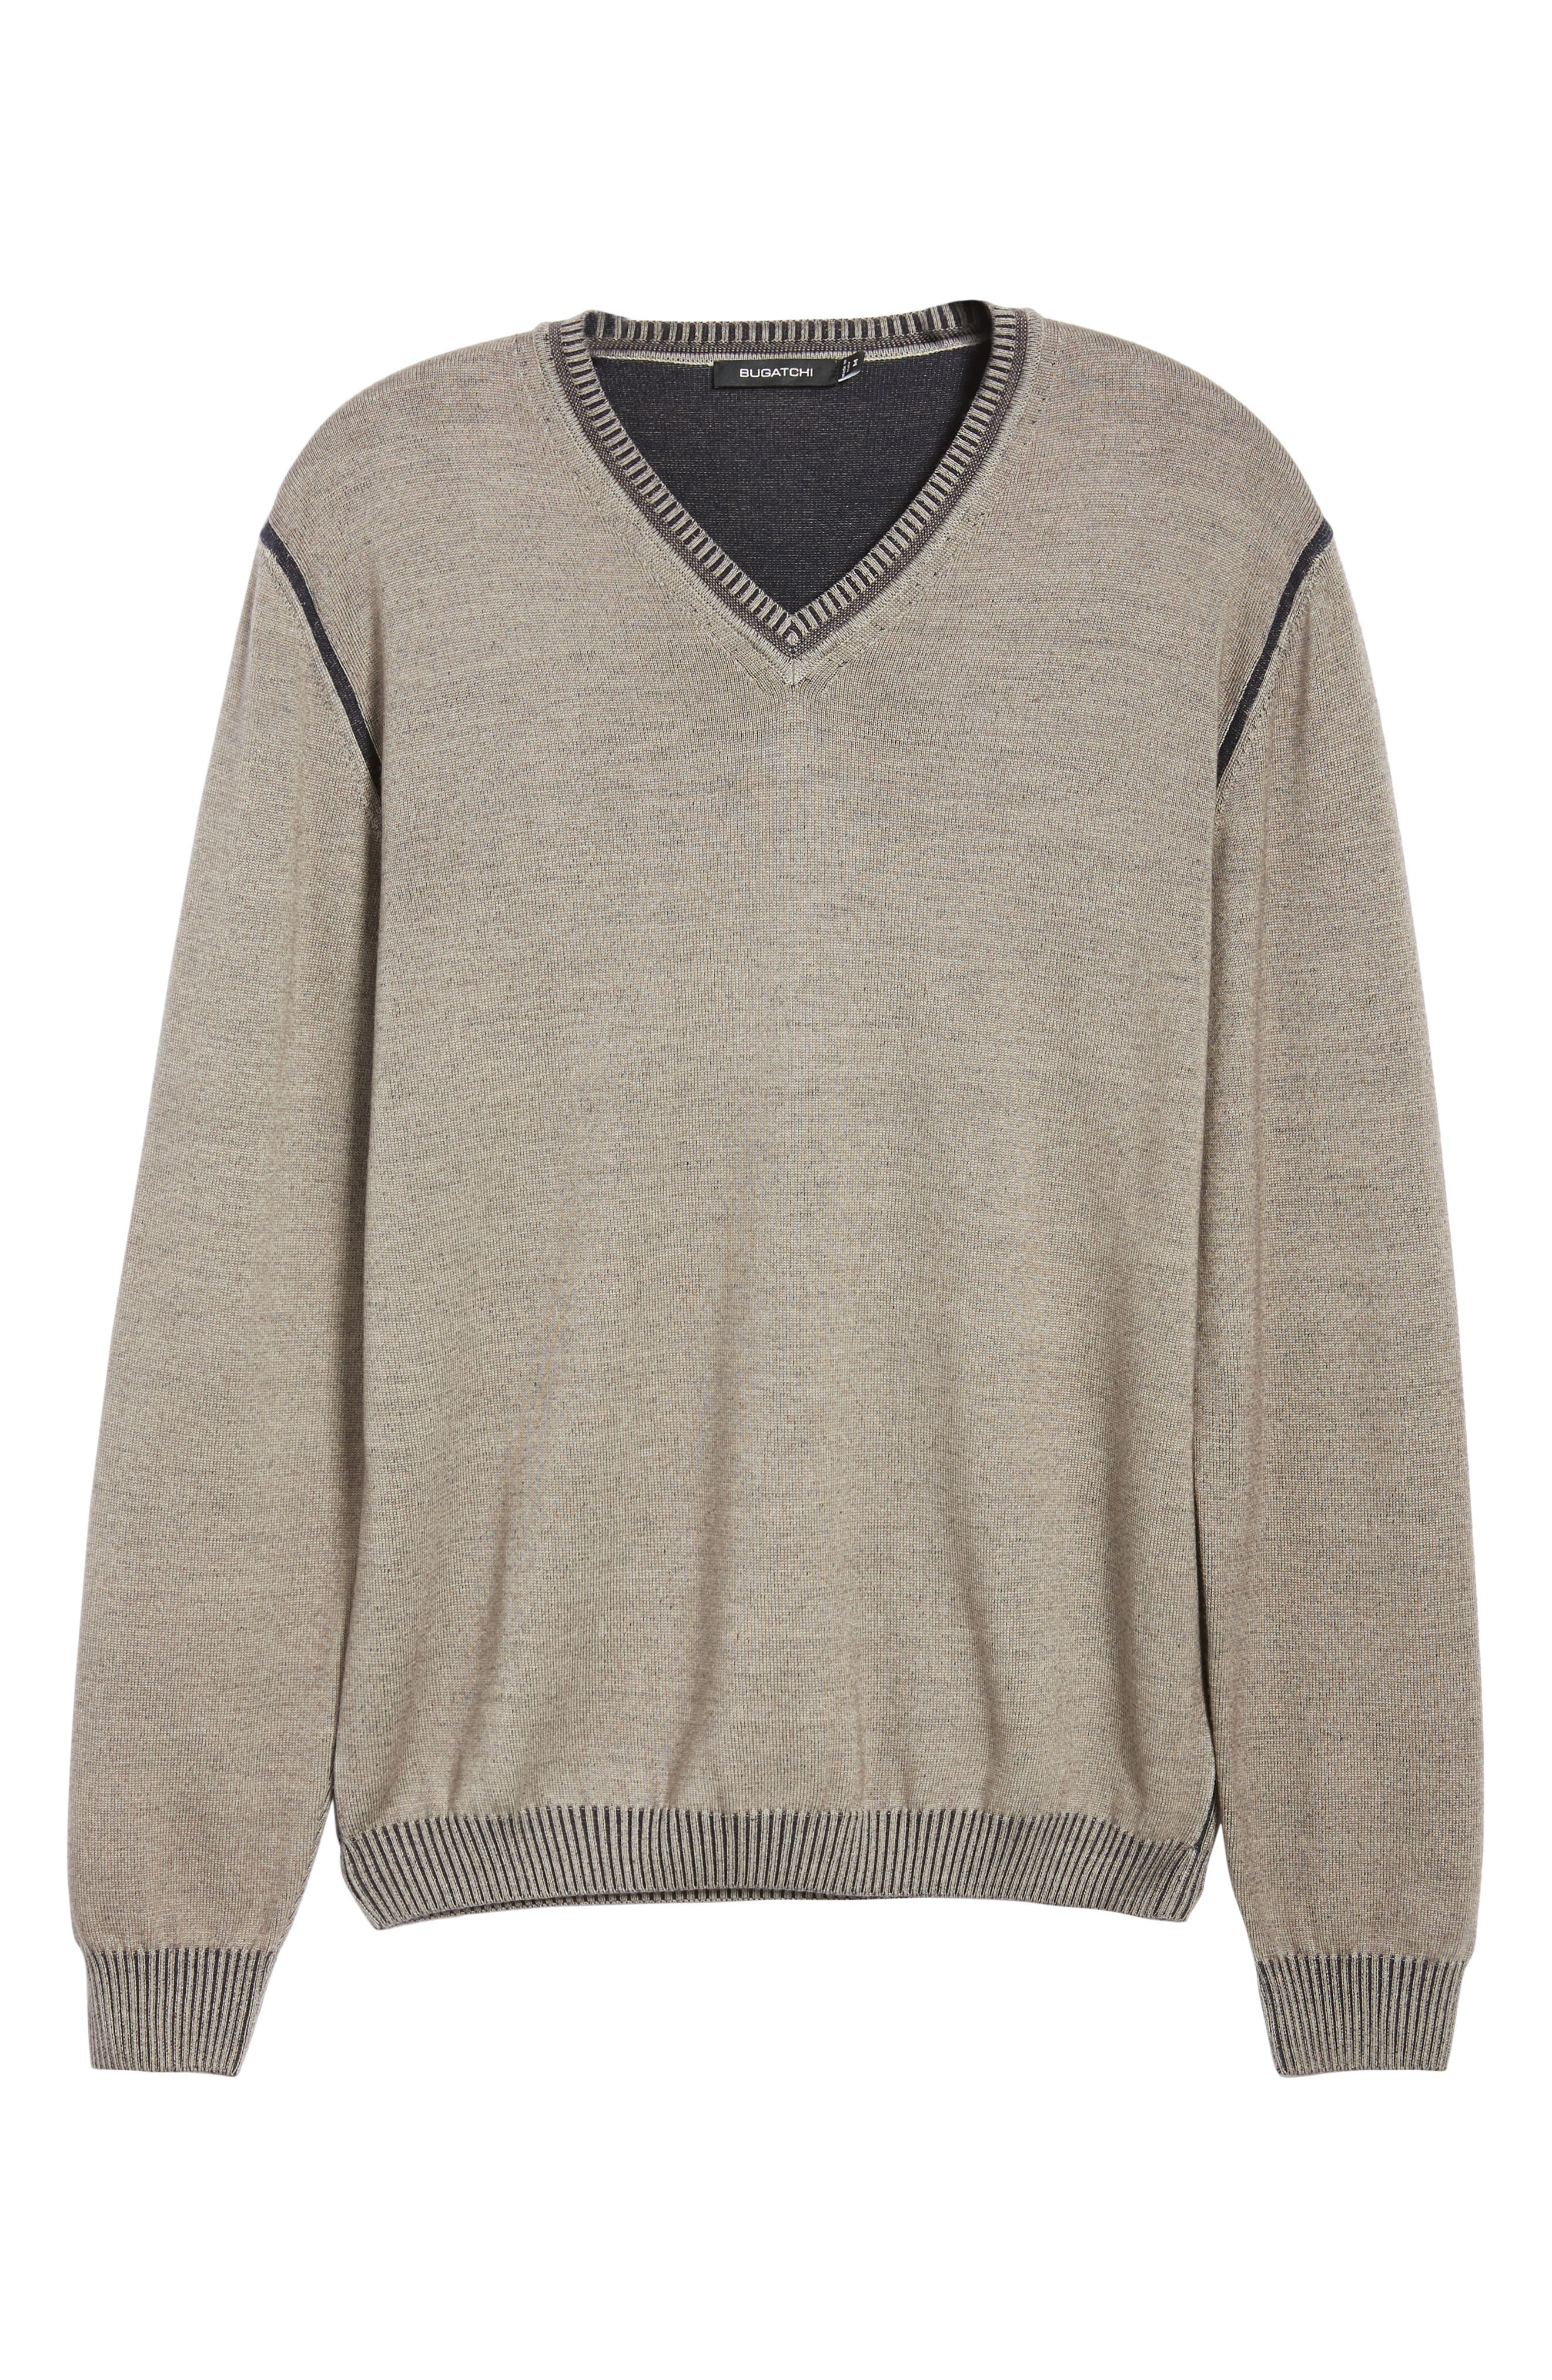 Wool Blend Sweater,                             Alternate thumbnail 6, color,                             TAUPE